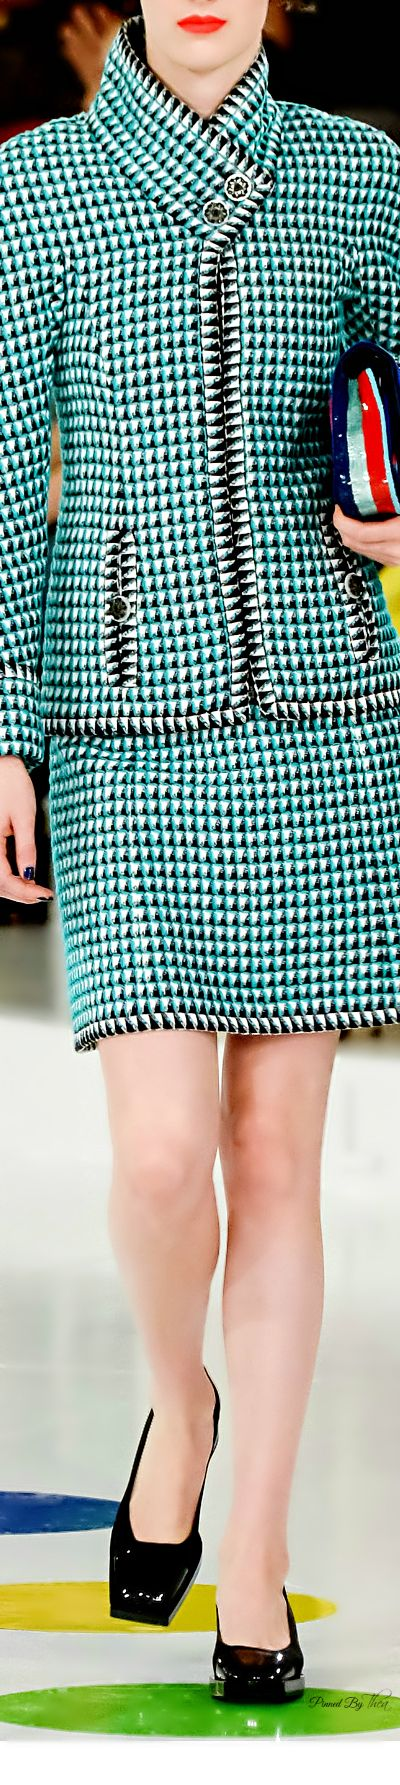 Chanel ~ Resort Herringbone Skirt Suit 2016